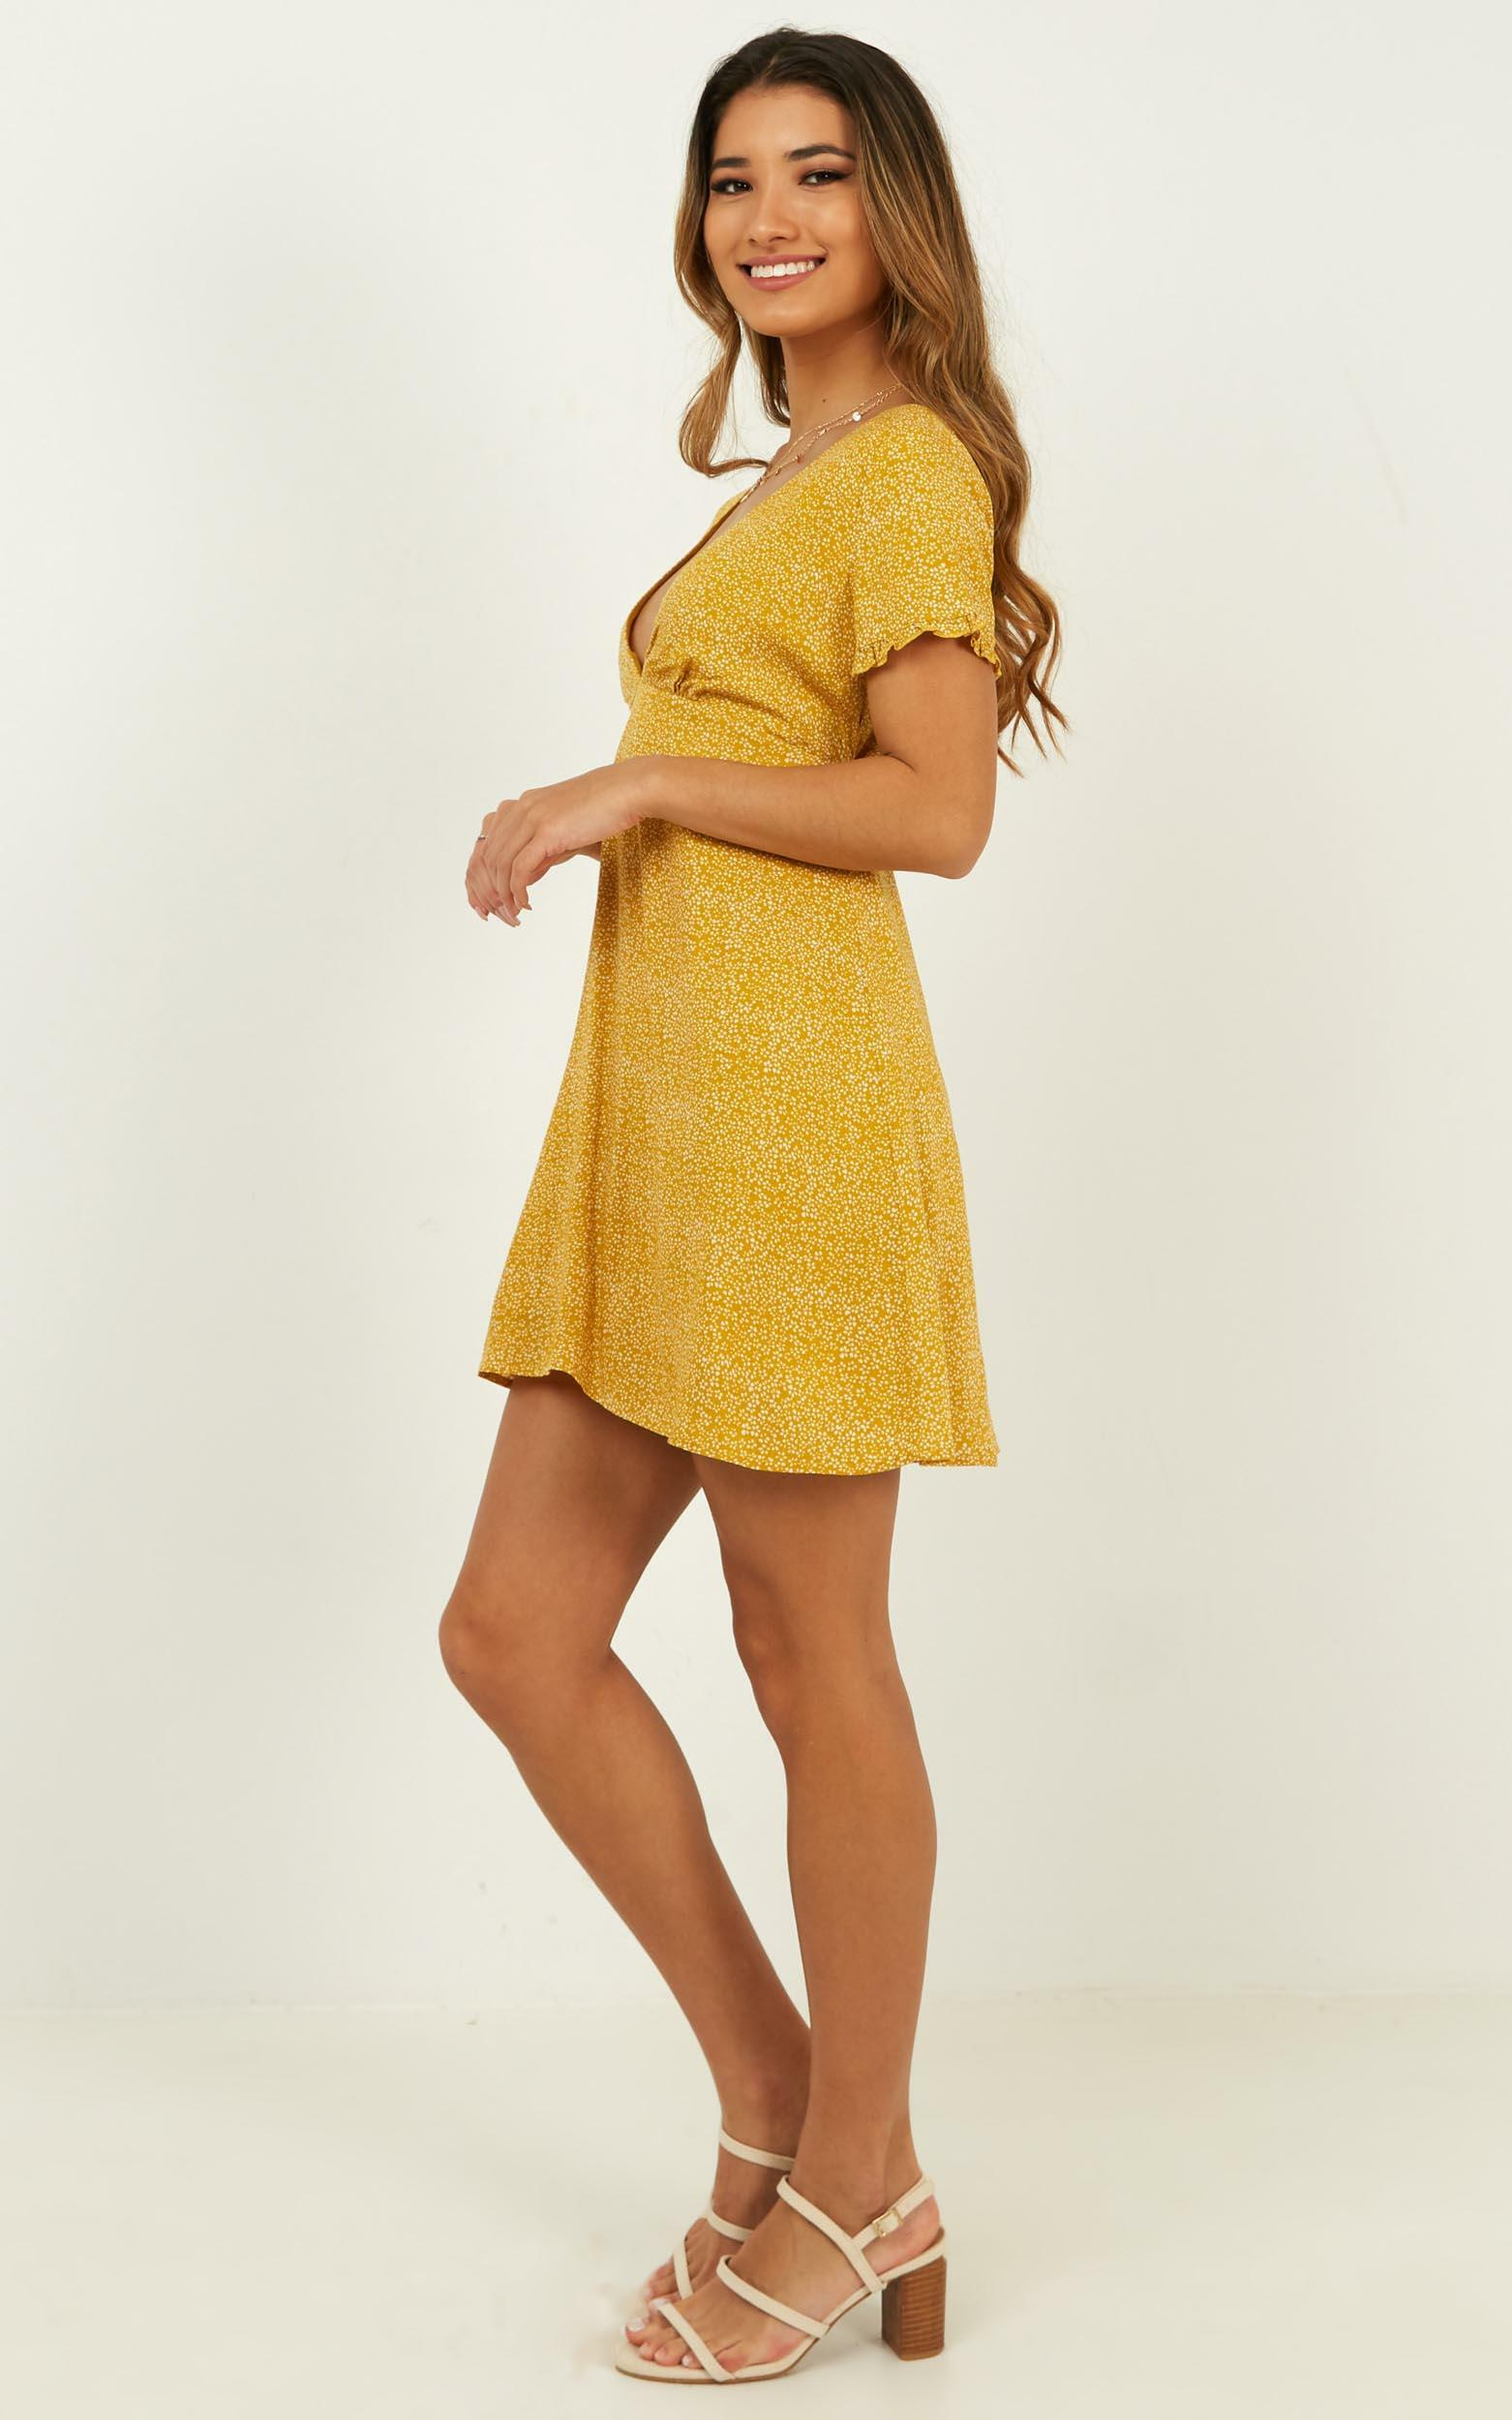 Nothing But Normal Dress in mustard print - 20 (XXXXL), Mustard, hi-res image number null